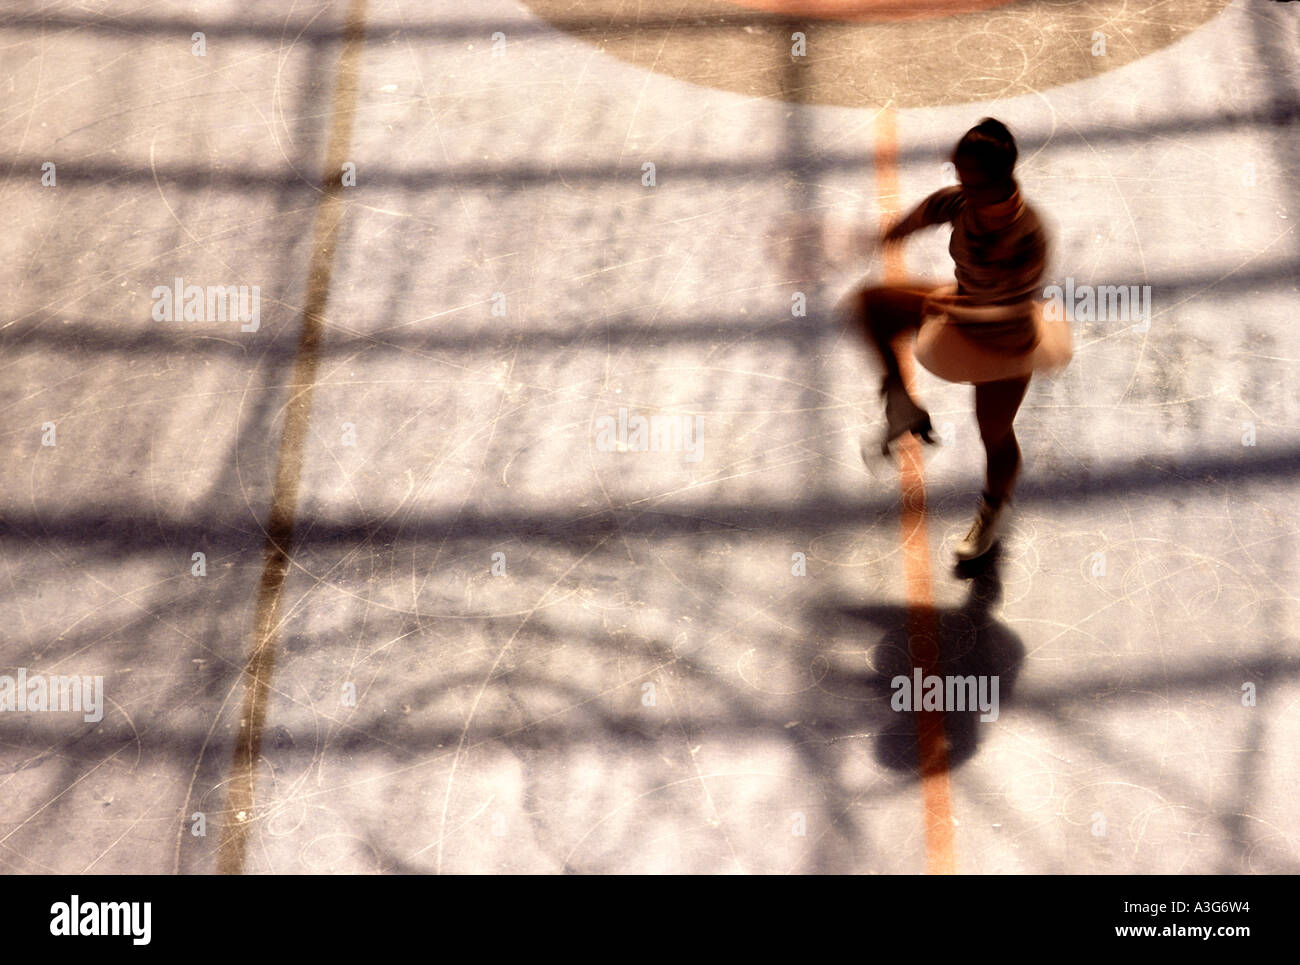 Dramatic overhead silhouette of a young woman practicing  for a figure skating competition in an in door ice rink. - Stock Image